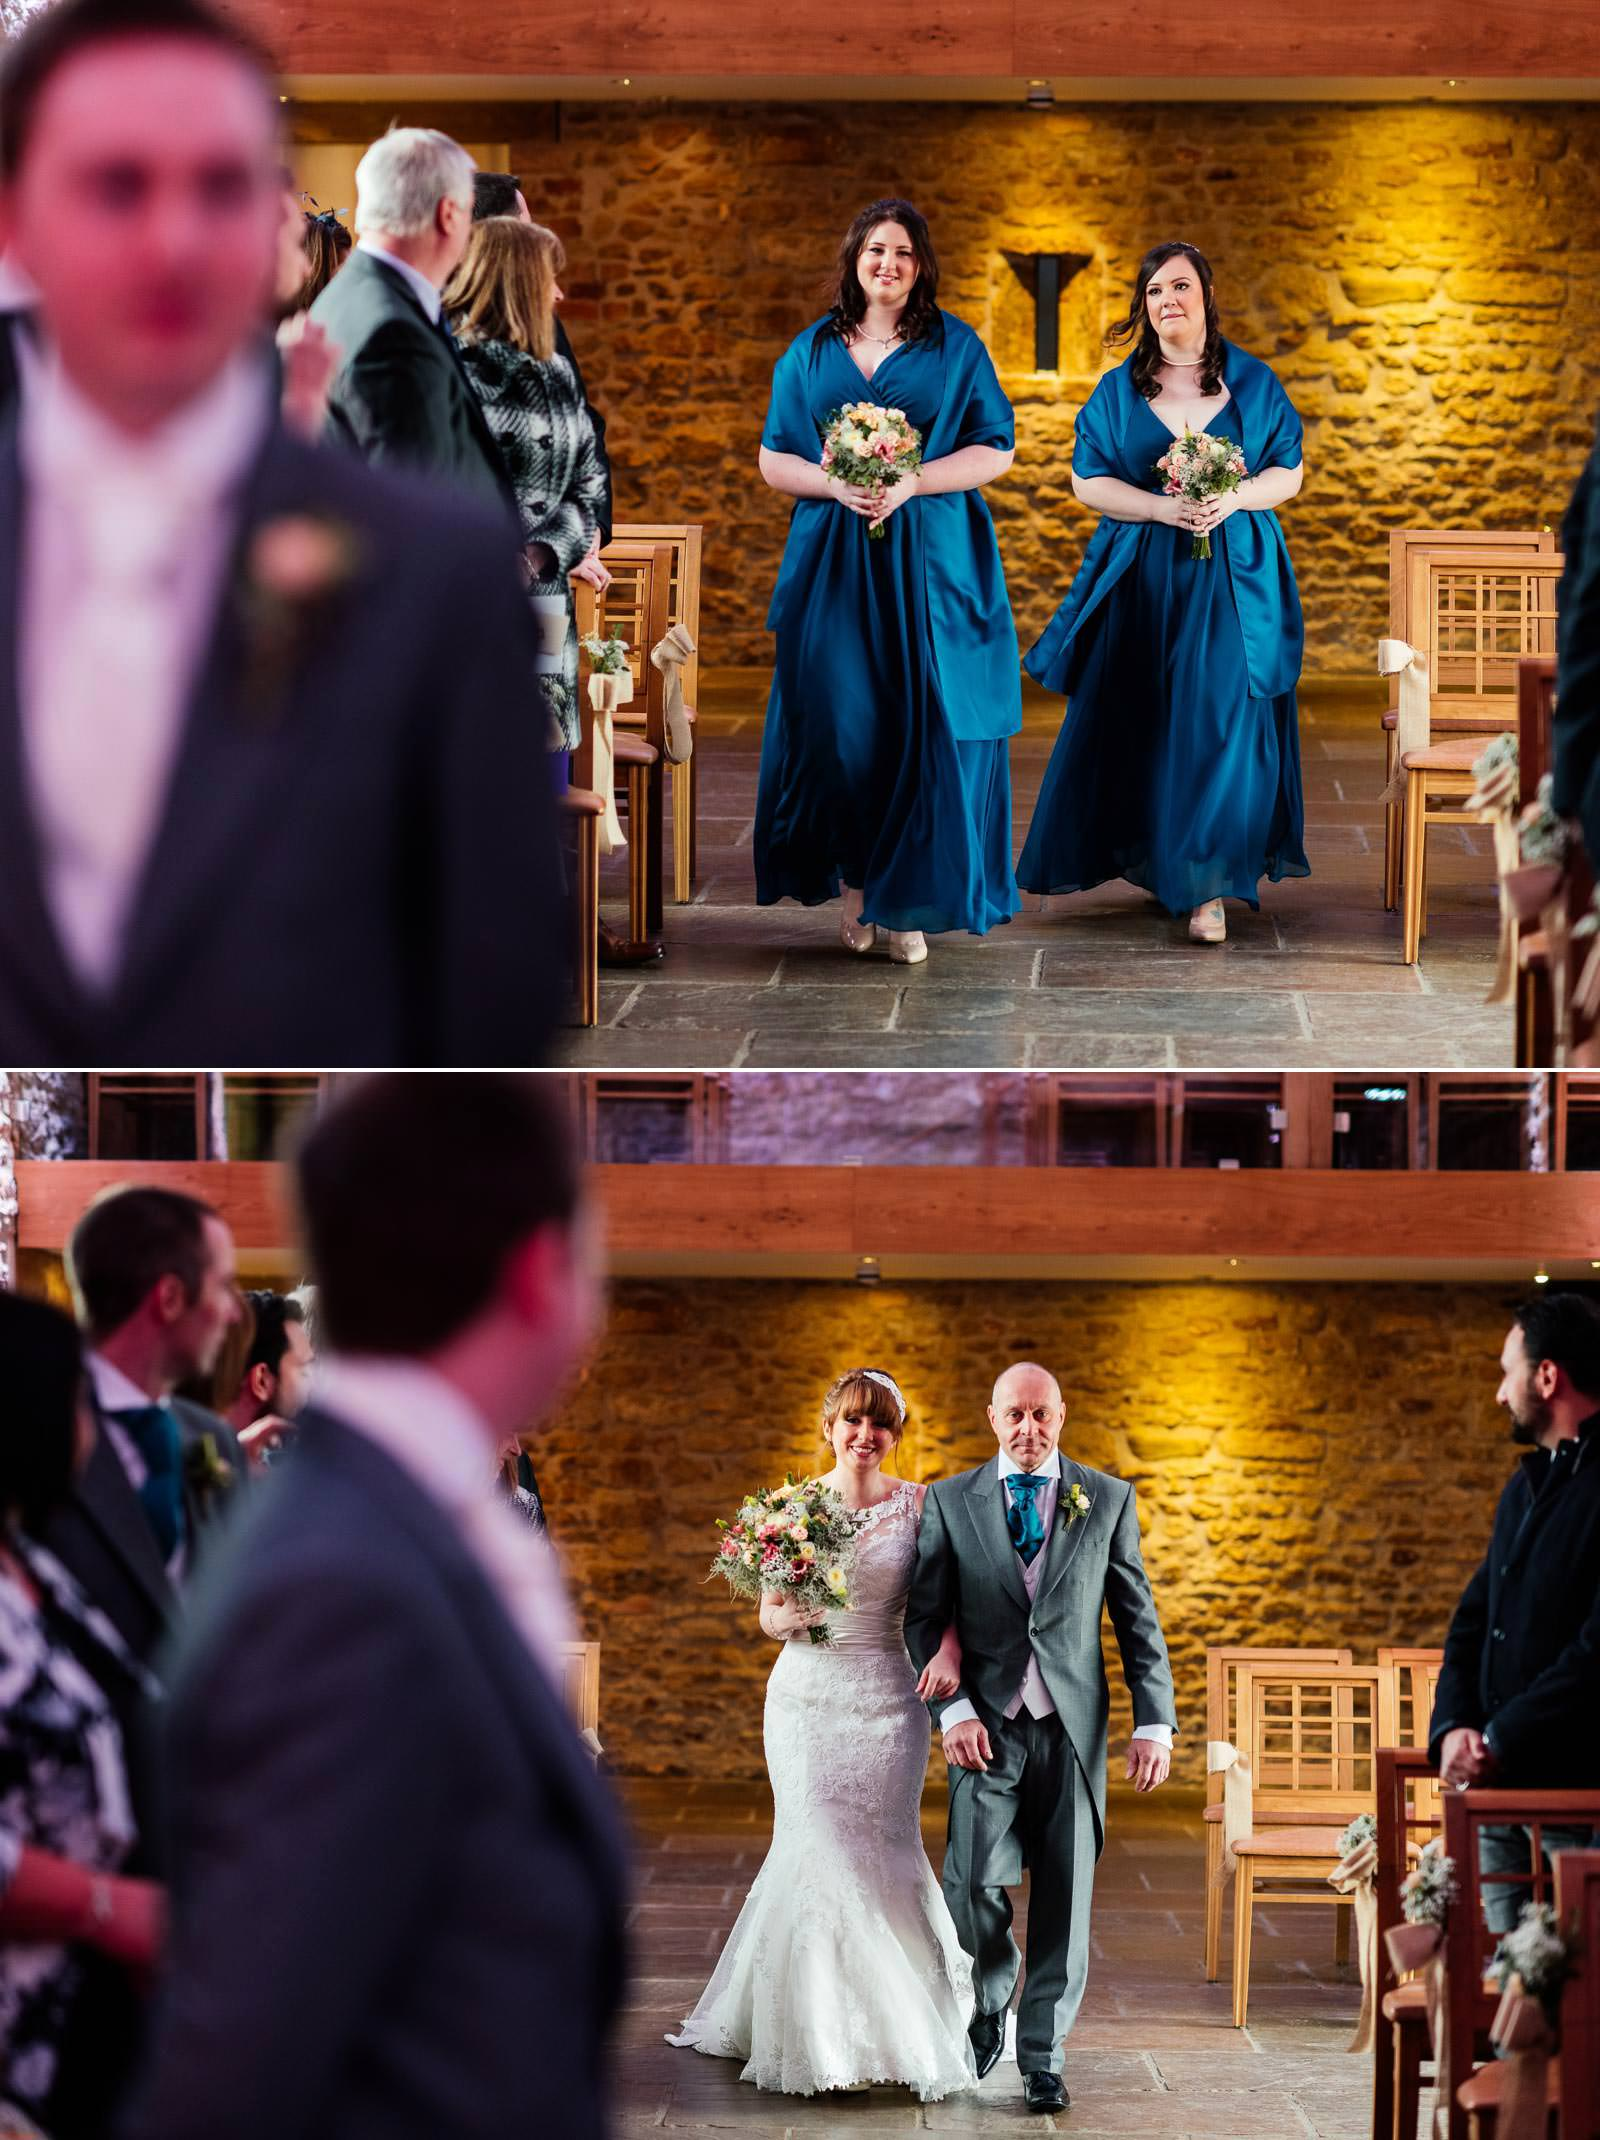 Dodford Manor Wedding Photographer 0007